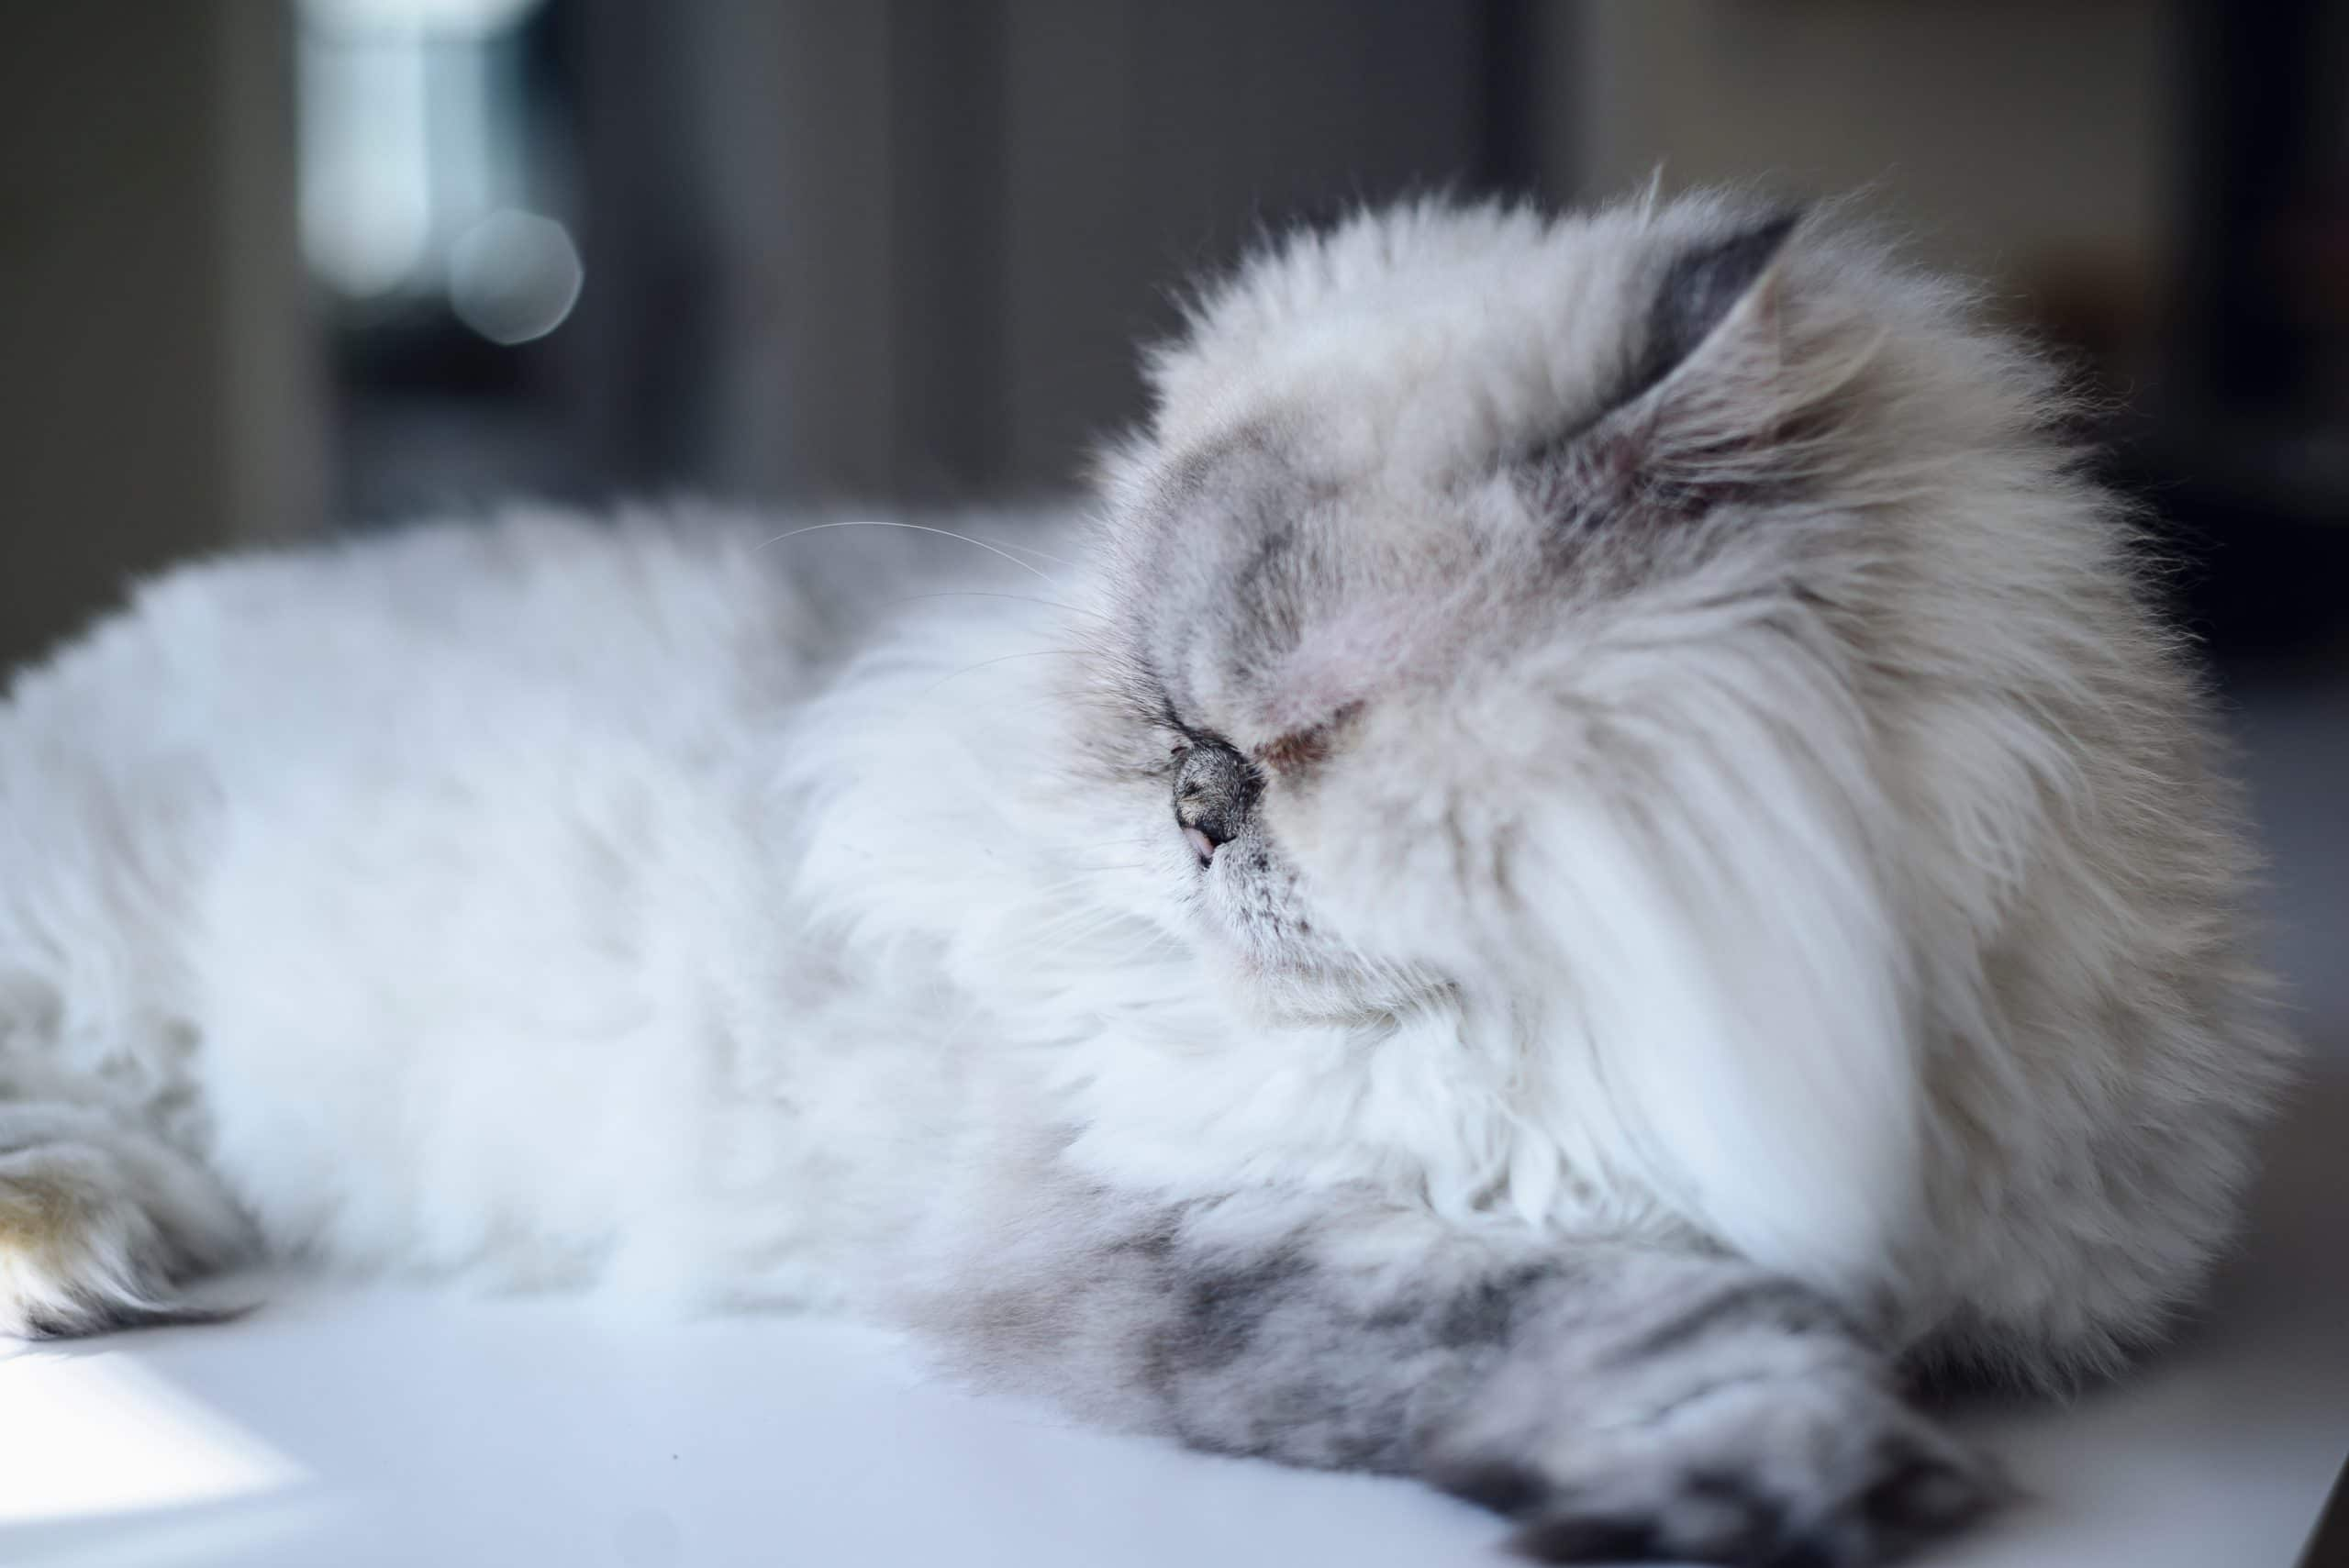 Diabetes is a common medical condition that afflicts older, overweight cats. Diabetes can cause senior cats to drink more water than normal.